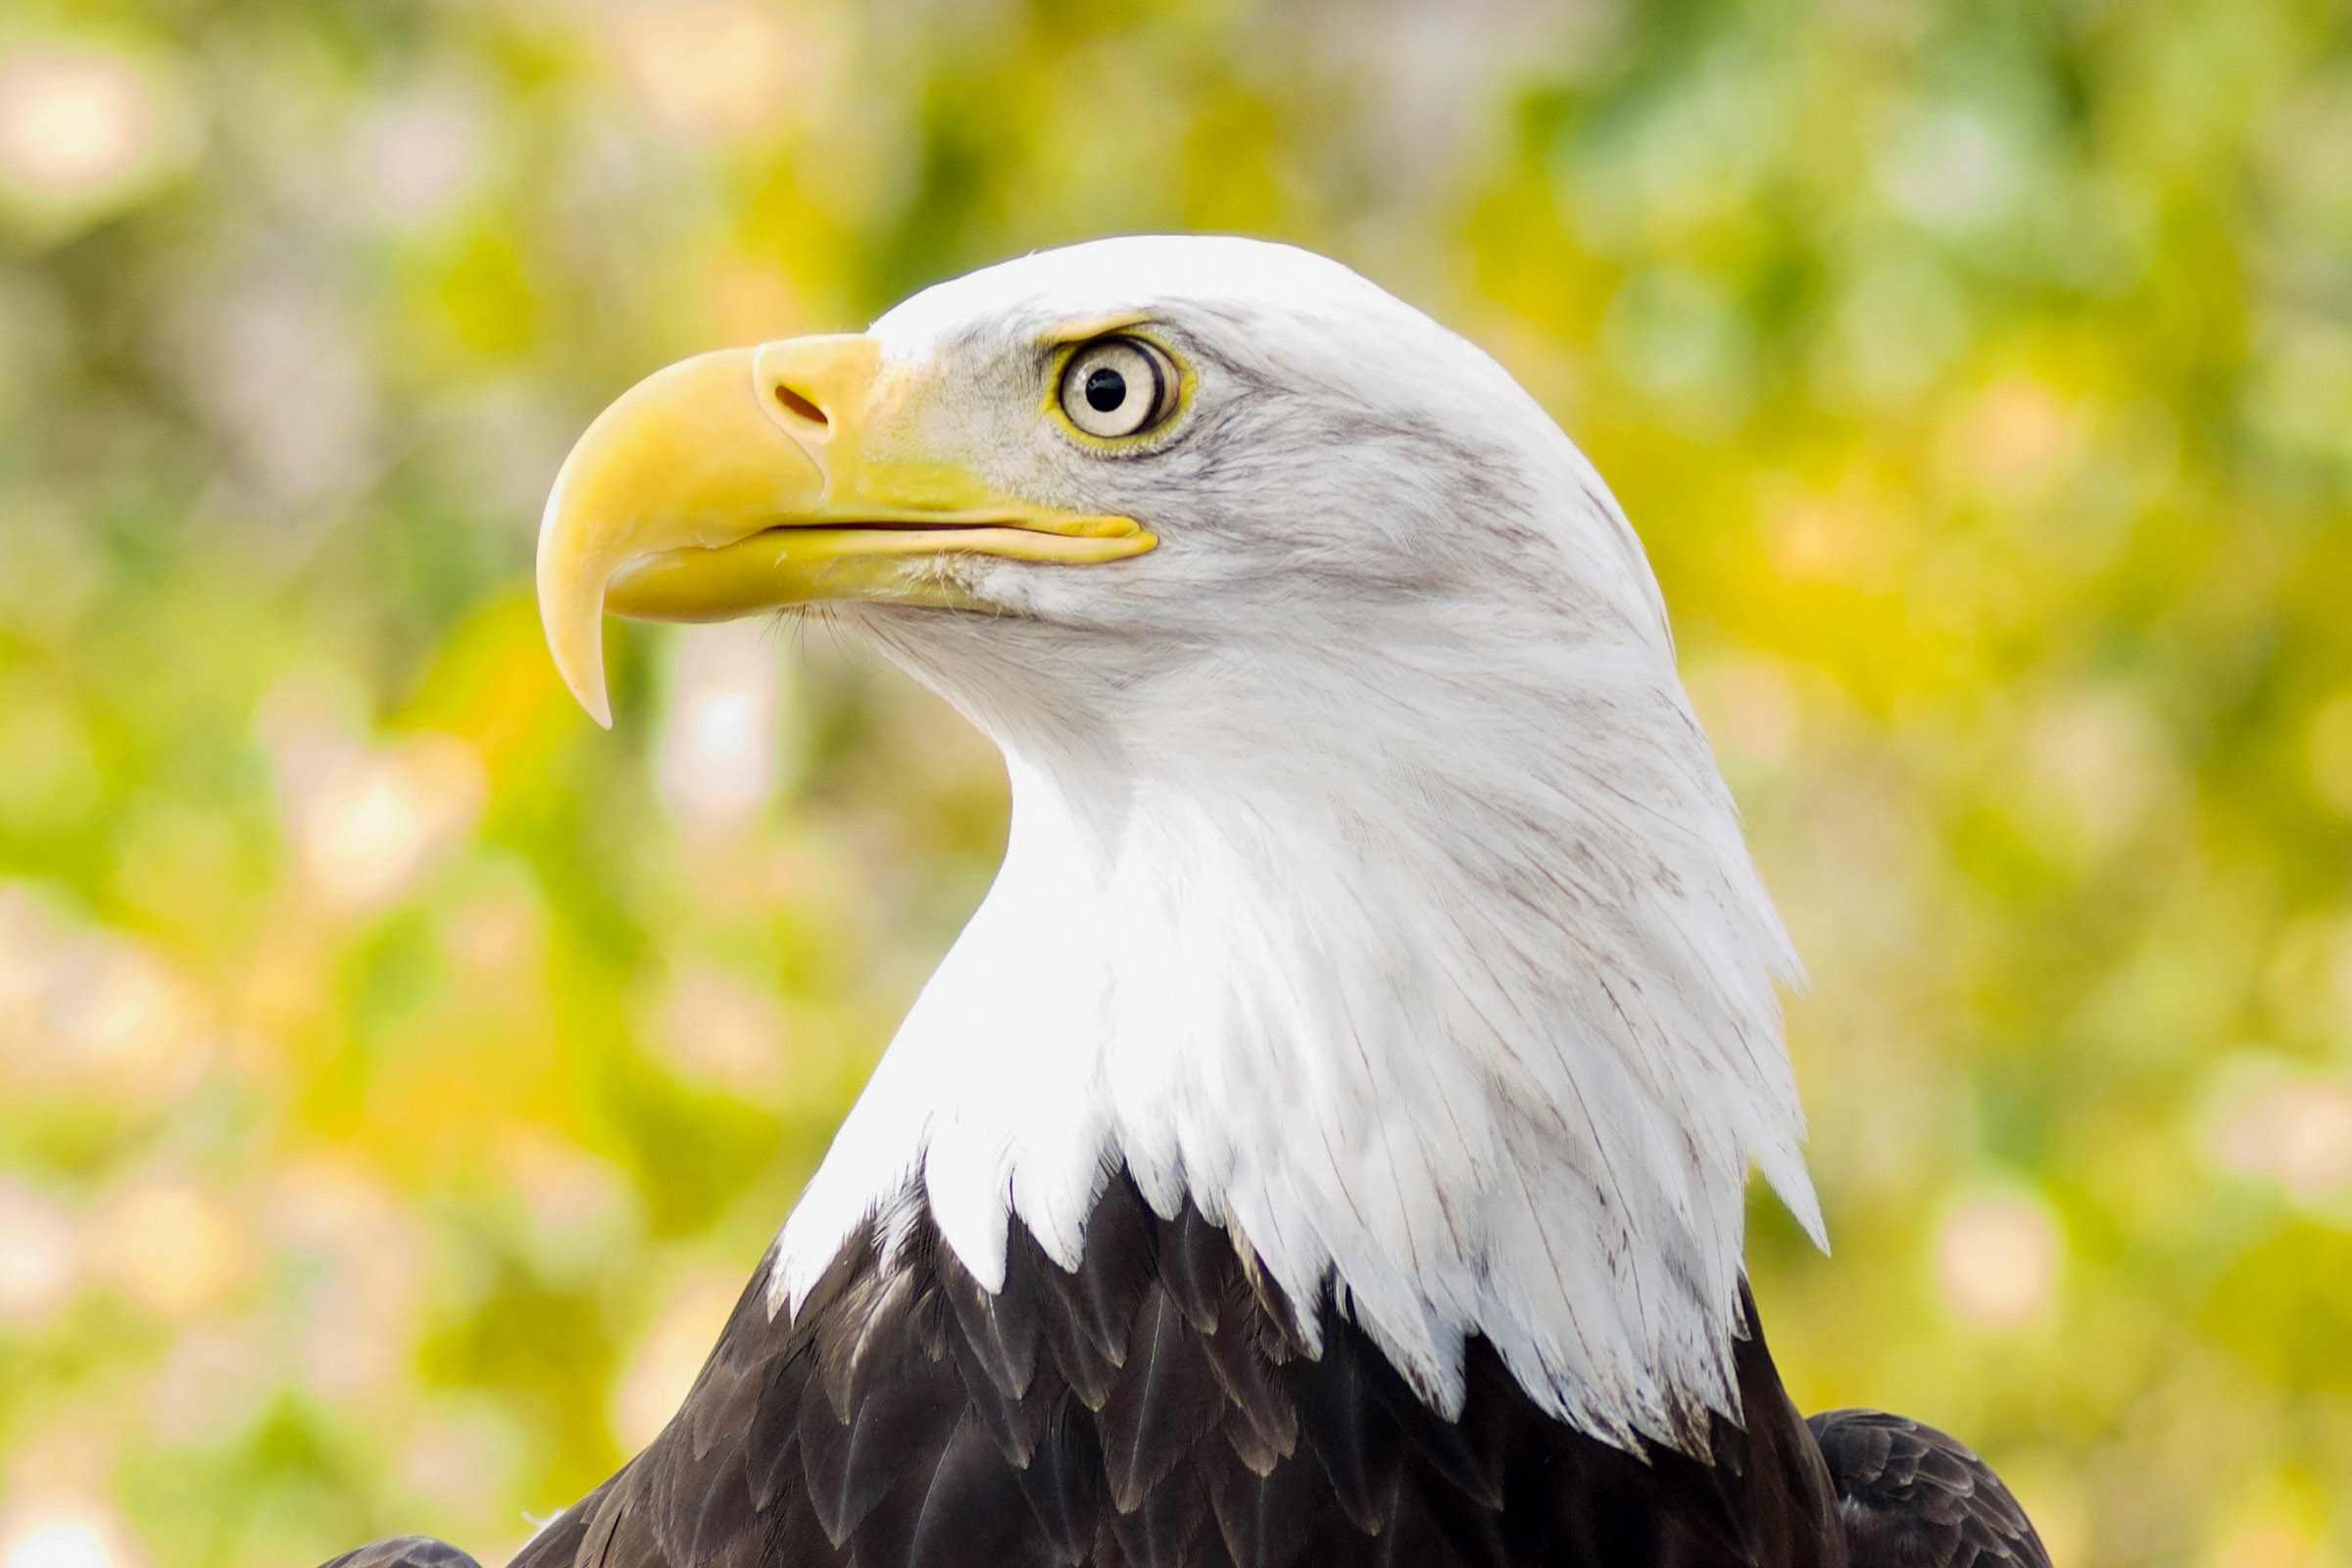 Bald eagle on yellow